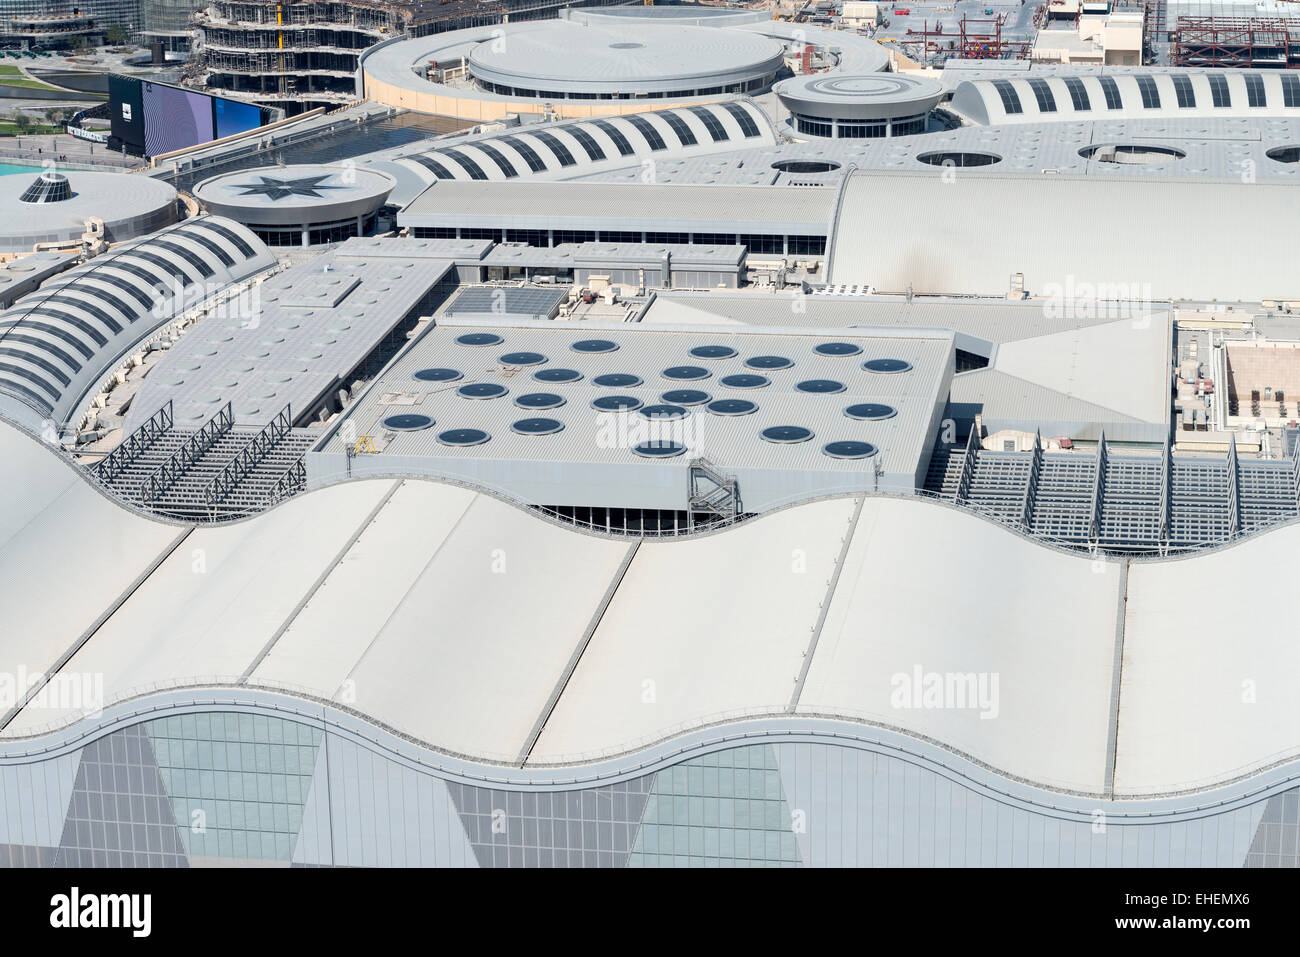 Vue du pavillon de Dubaï Mall à Dubaï Émirats Arabes Unis Photo Stock